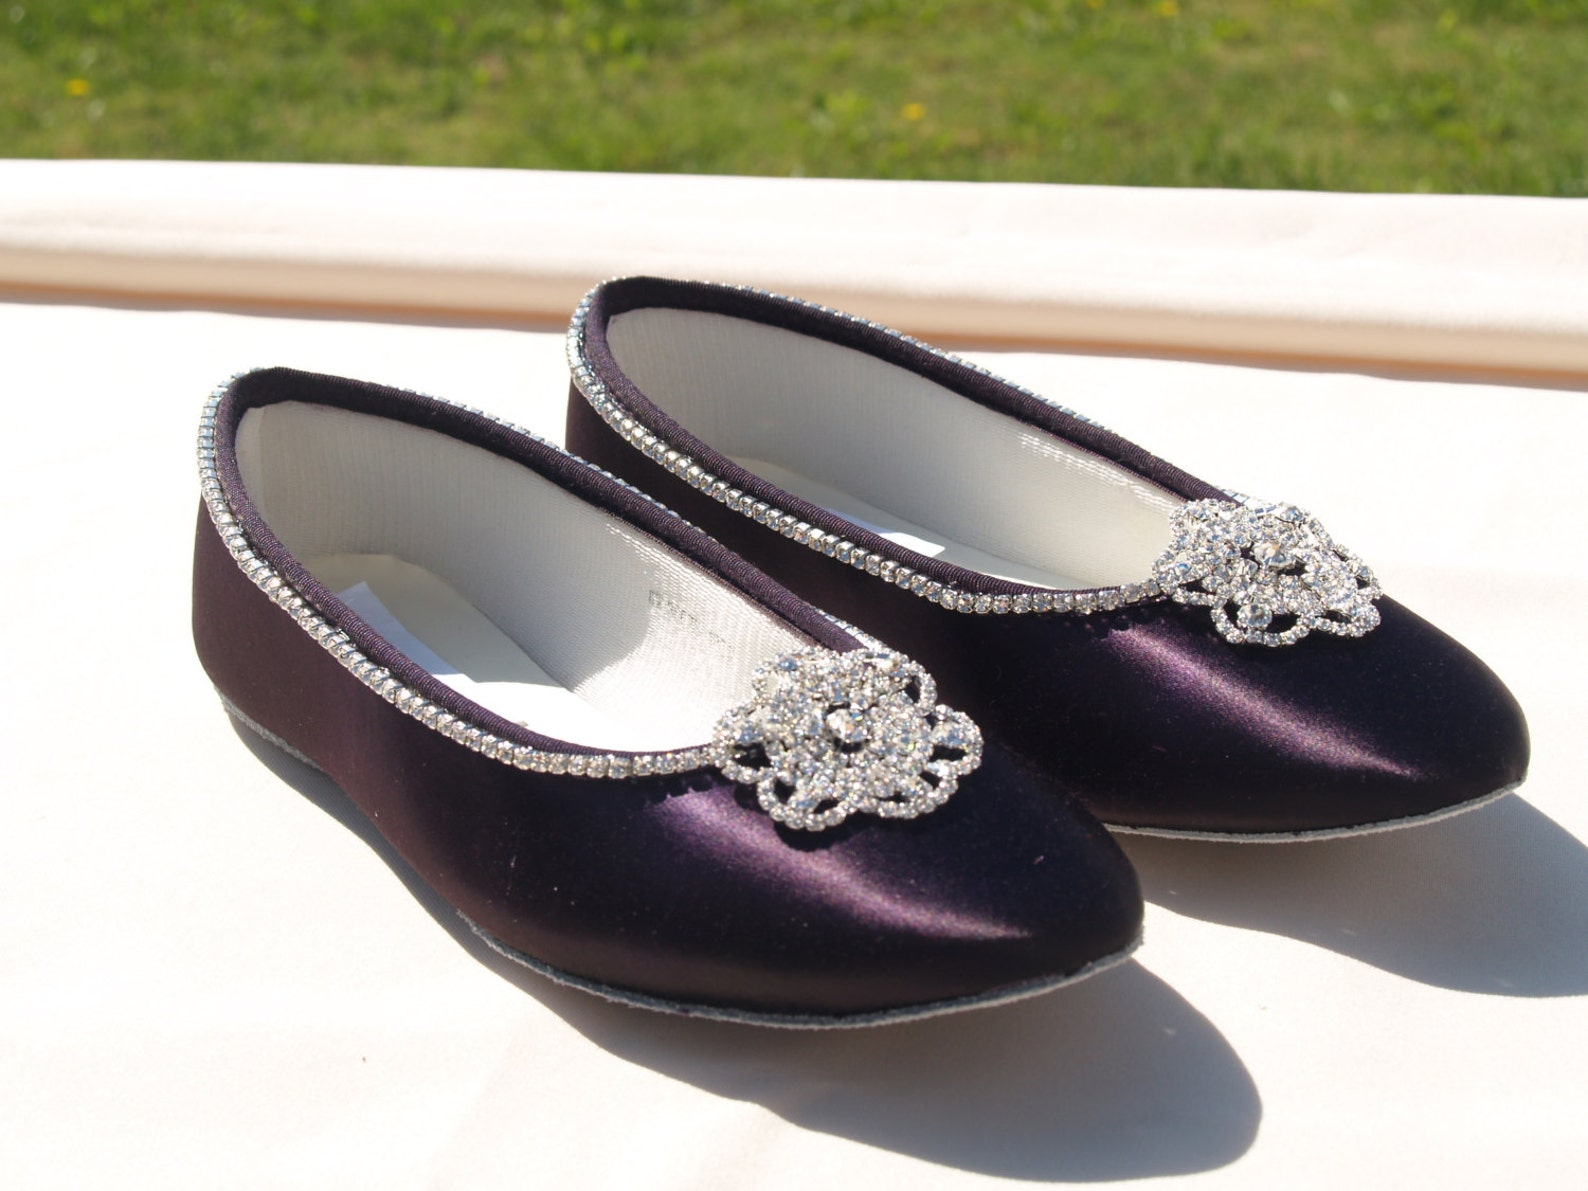 bling wedding shoes, purple flats, 15+ colors shoes satin ballet style flat slipper, wedding shoes, bridesmaids, special occasio